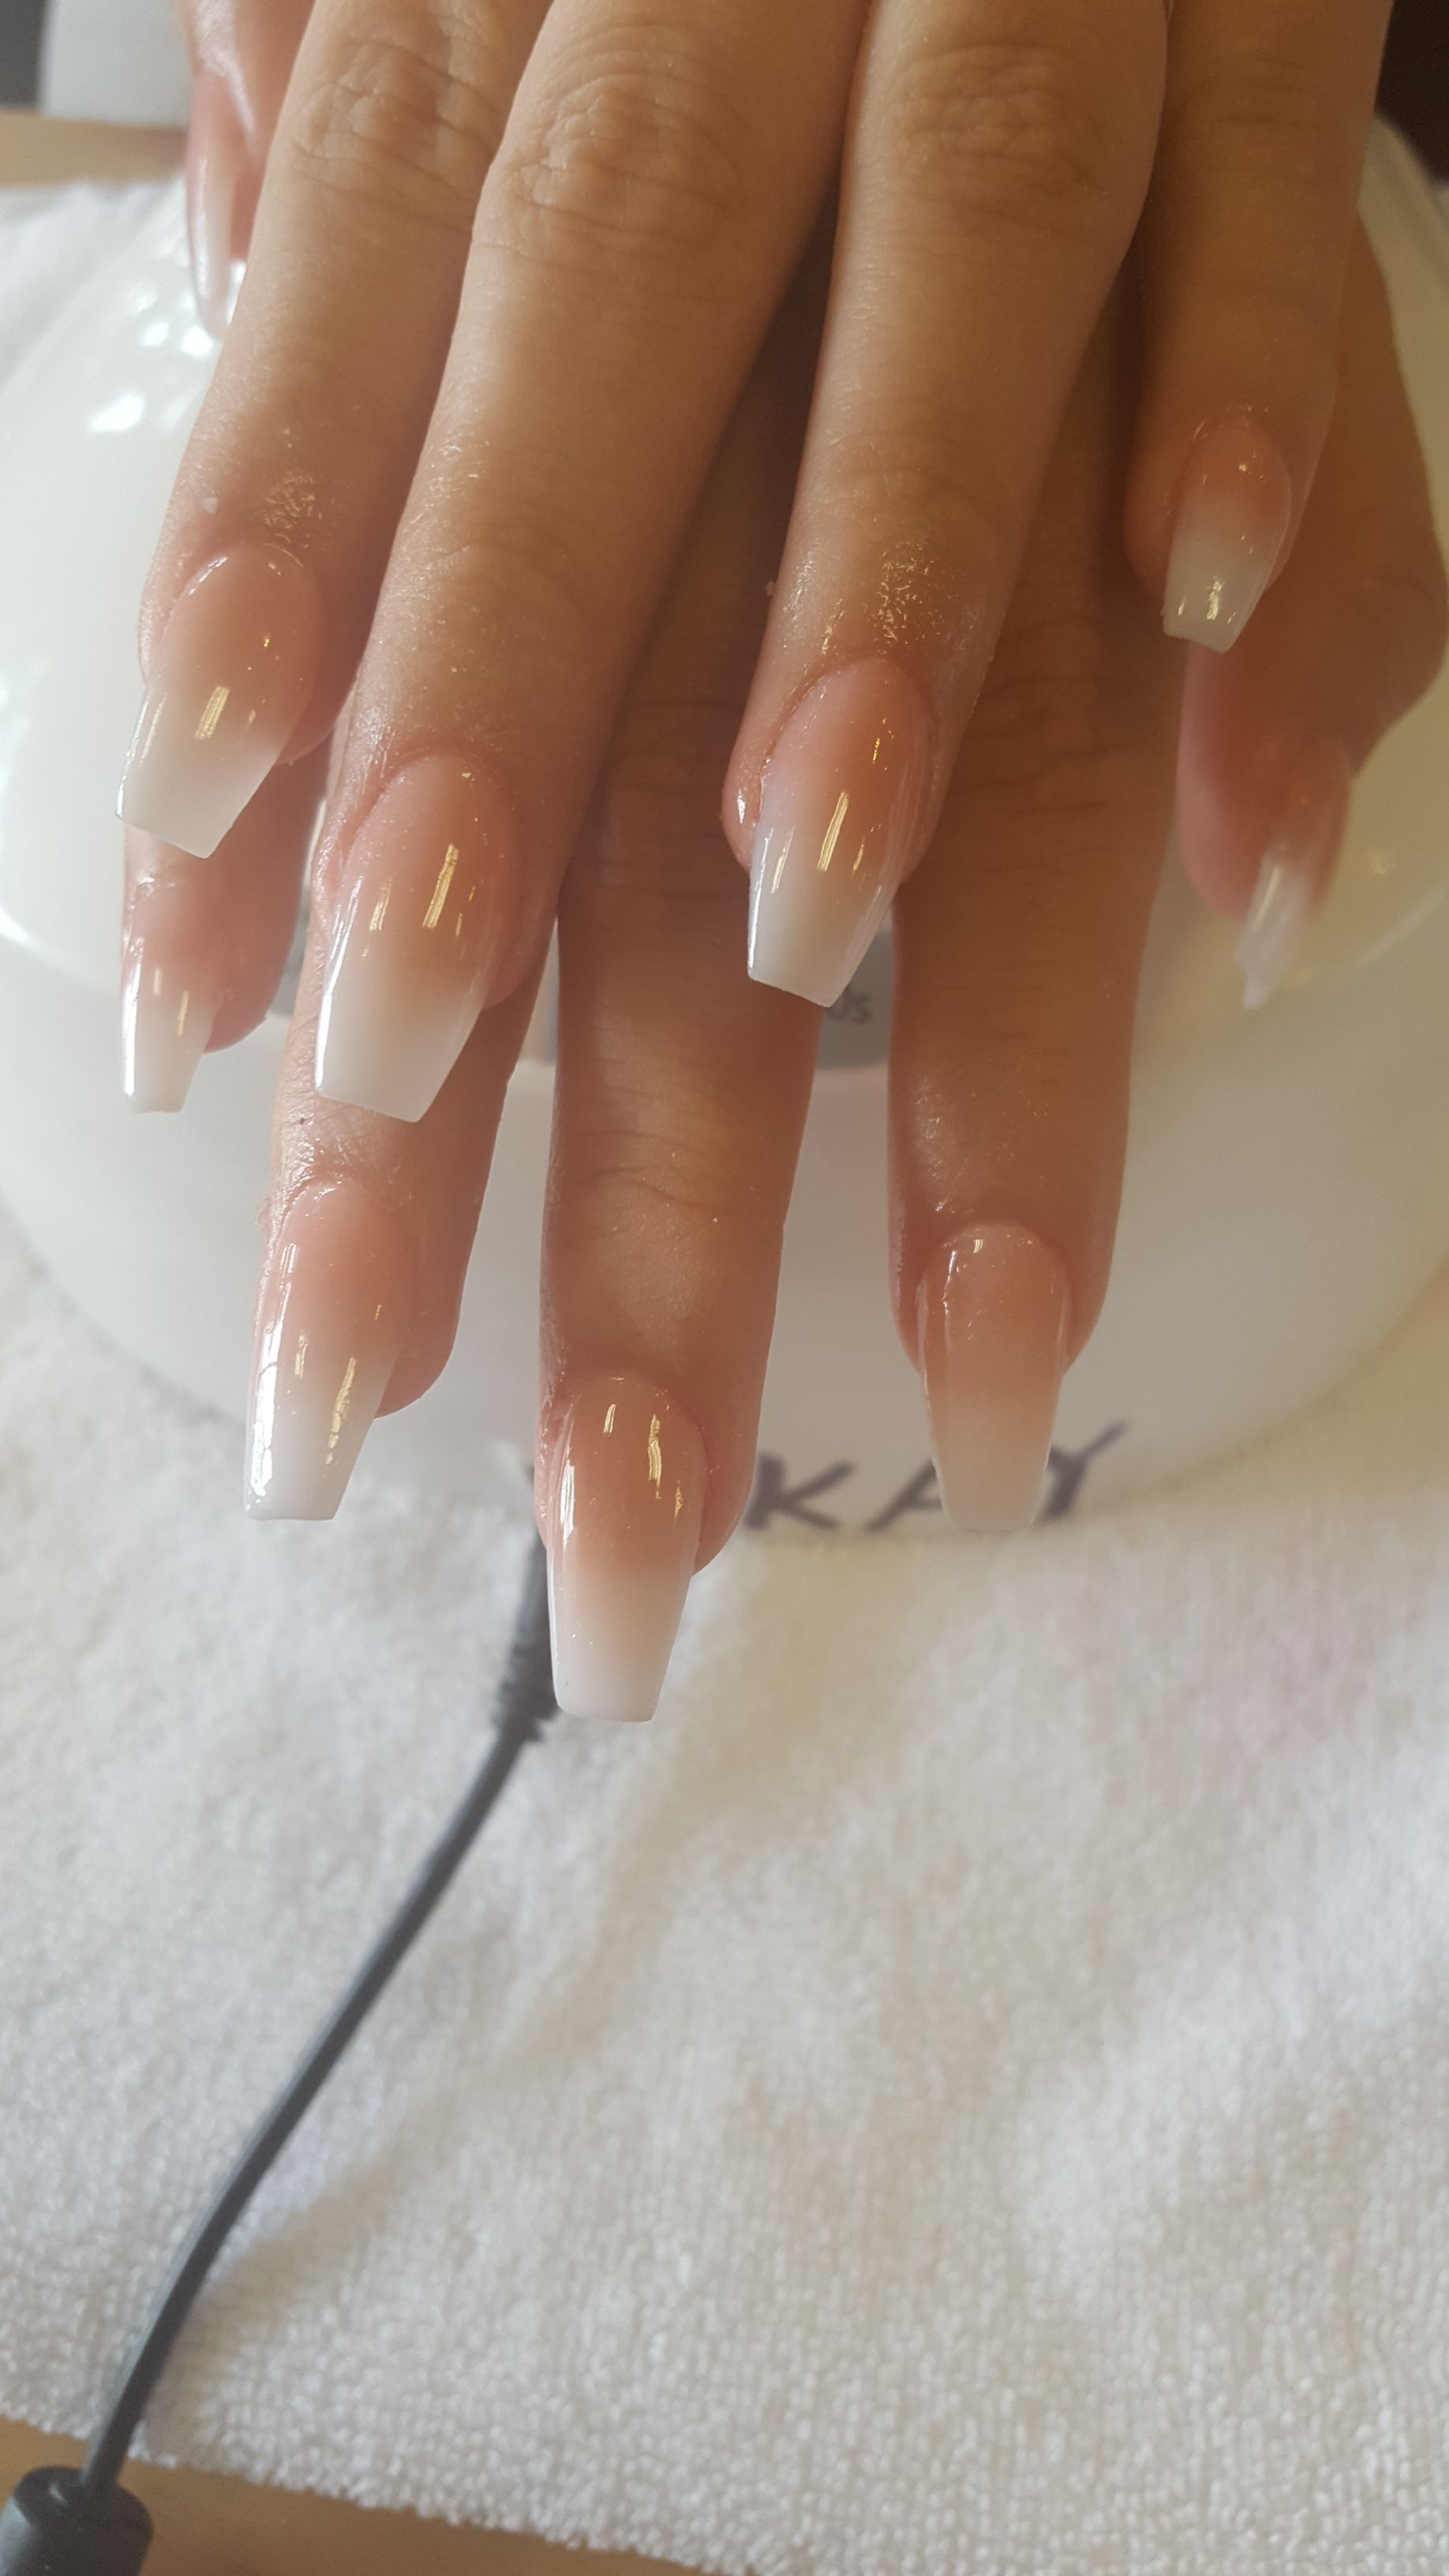 Ombre Natural Looking Acrylic Set Ombre Ombrenail Acrylic Acrylicnails Omb Burgundy Acrylic Nails Natural Looking Acrylic Nails Natural Acrylic Nails